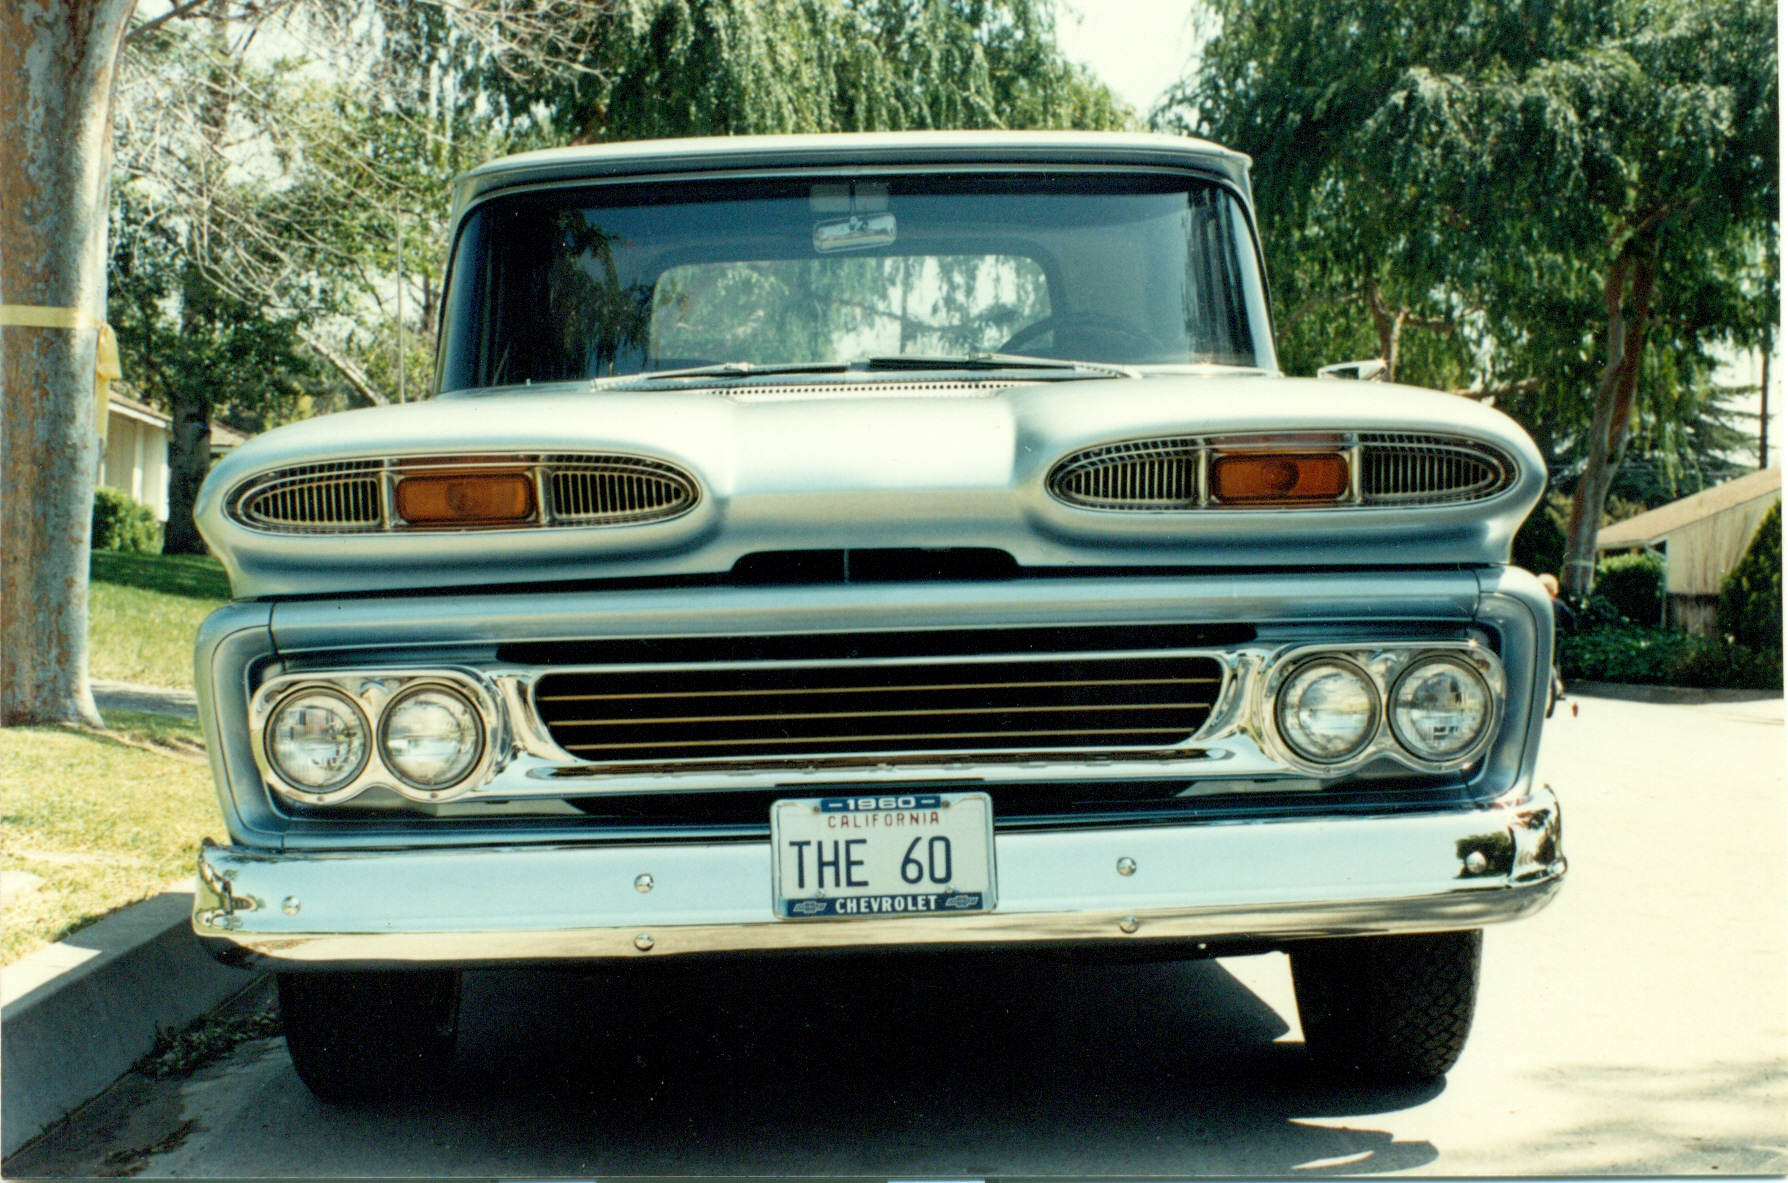 Dad's Dream Came True – 1960 Chevy Truck